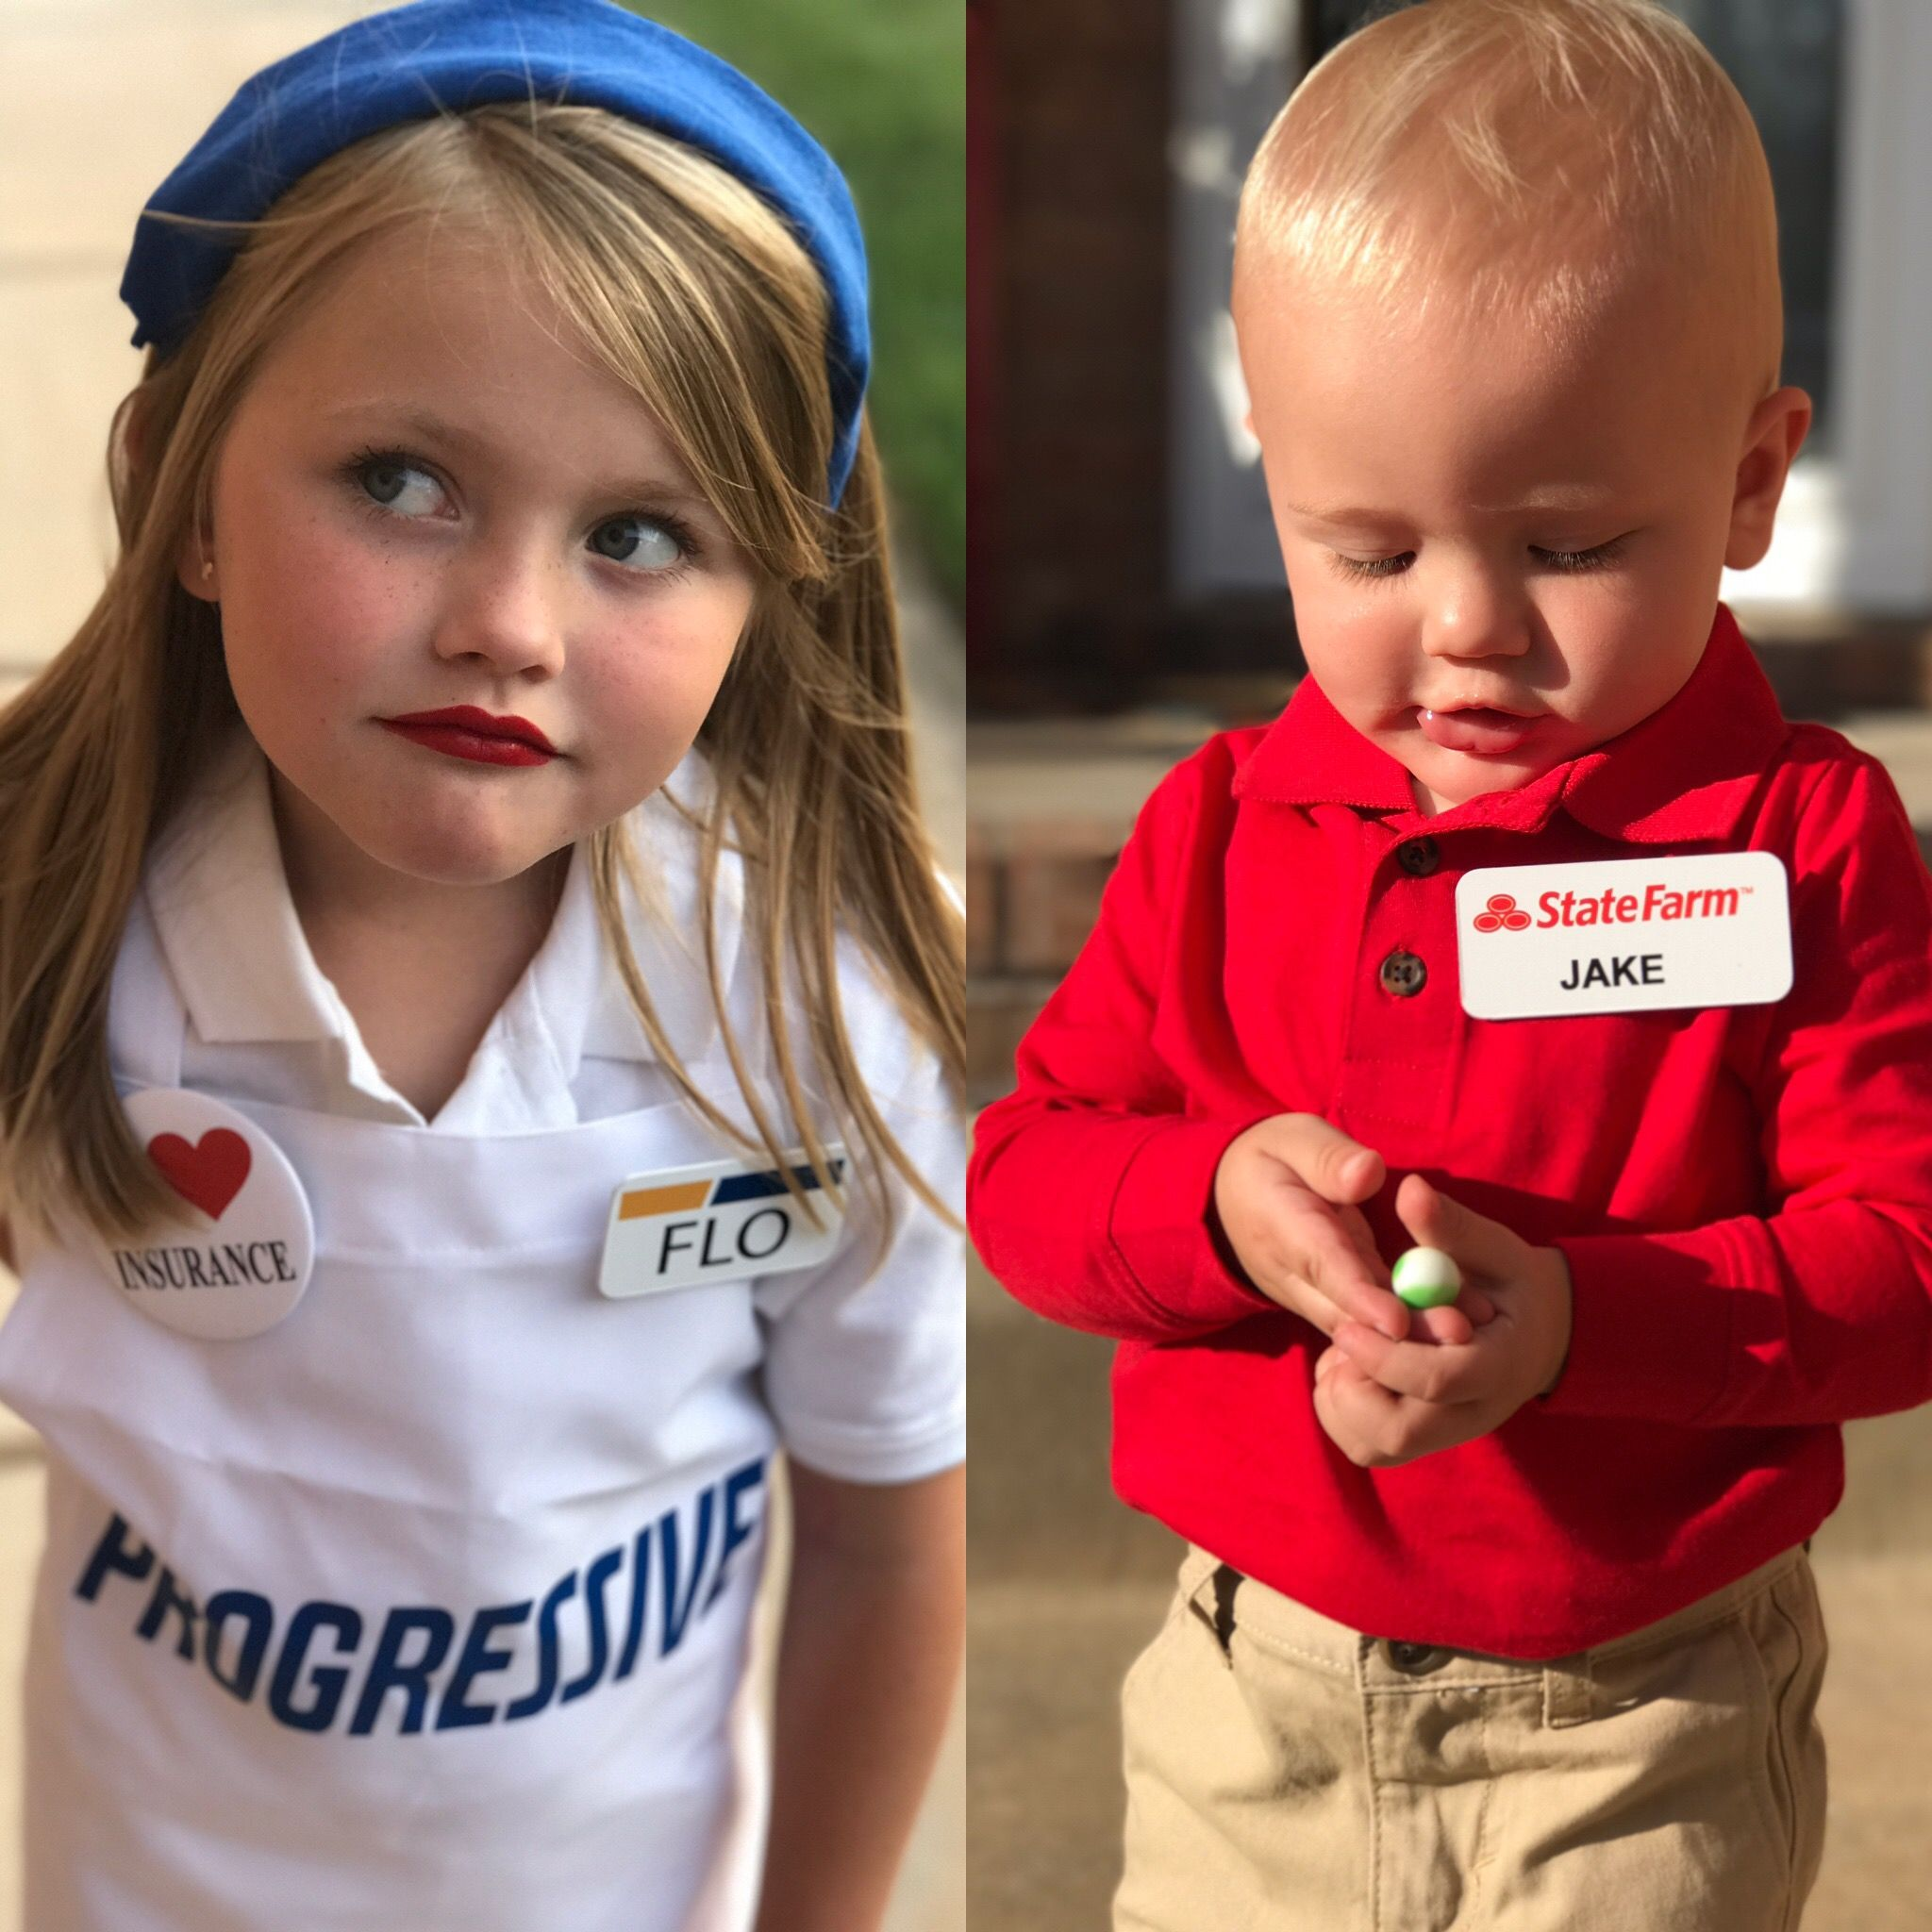 Flo from Progressive Jake from StateFarm Halloween